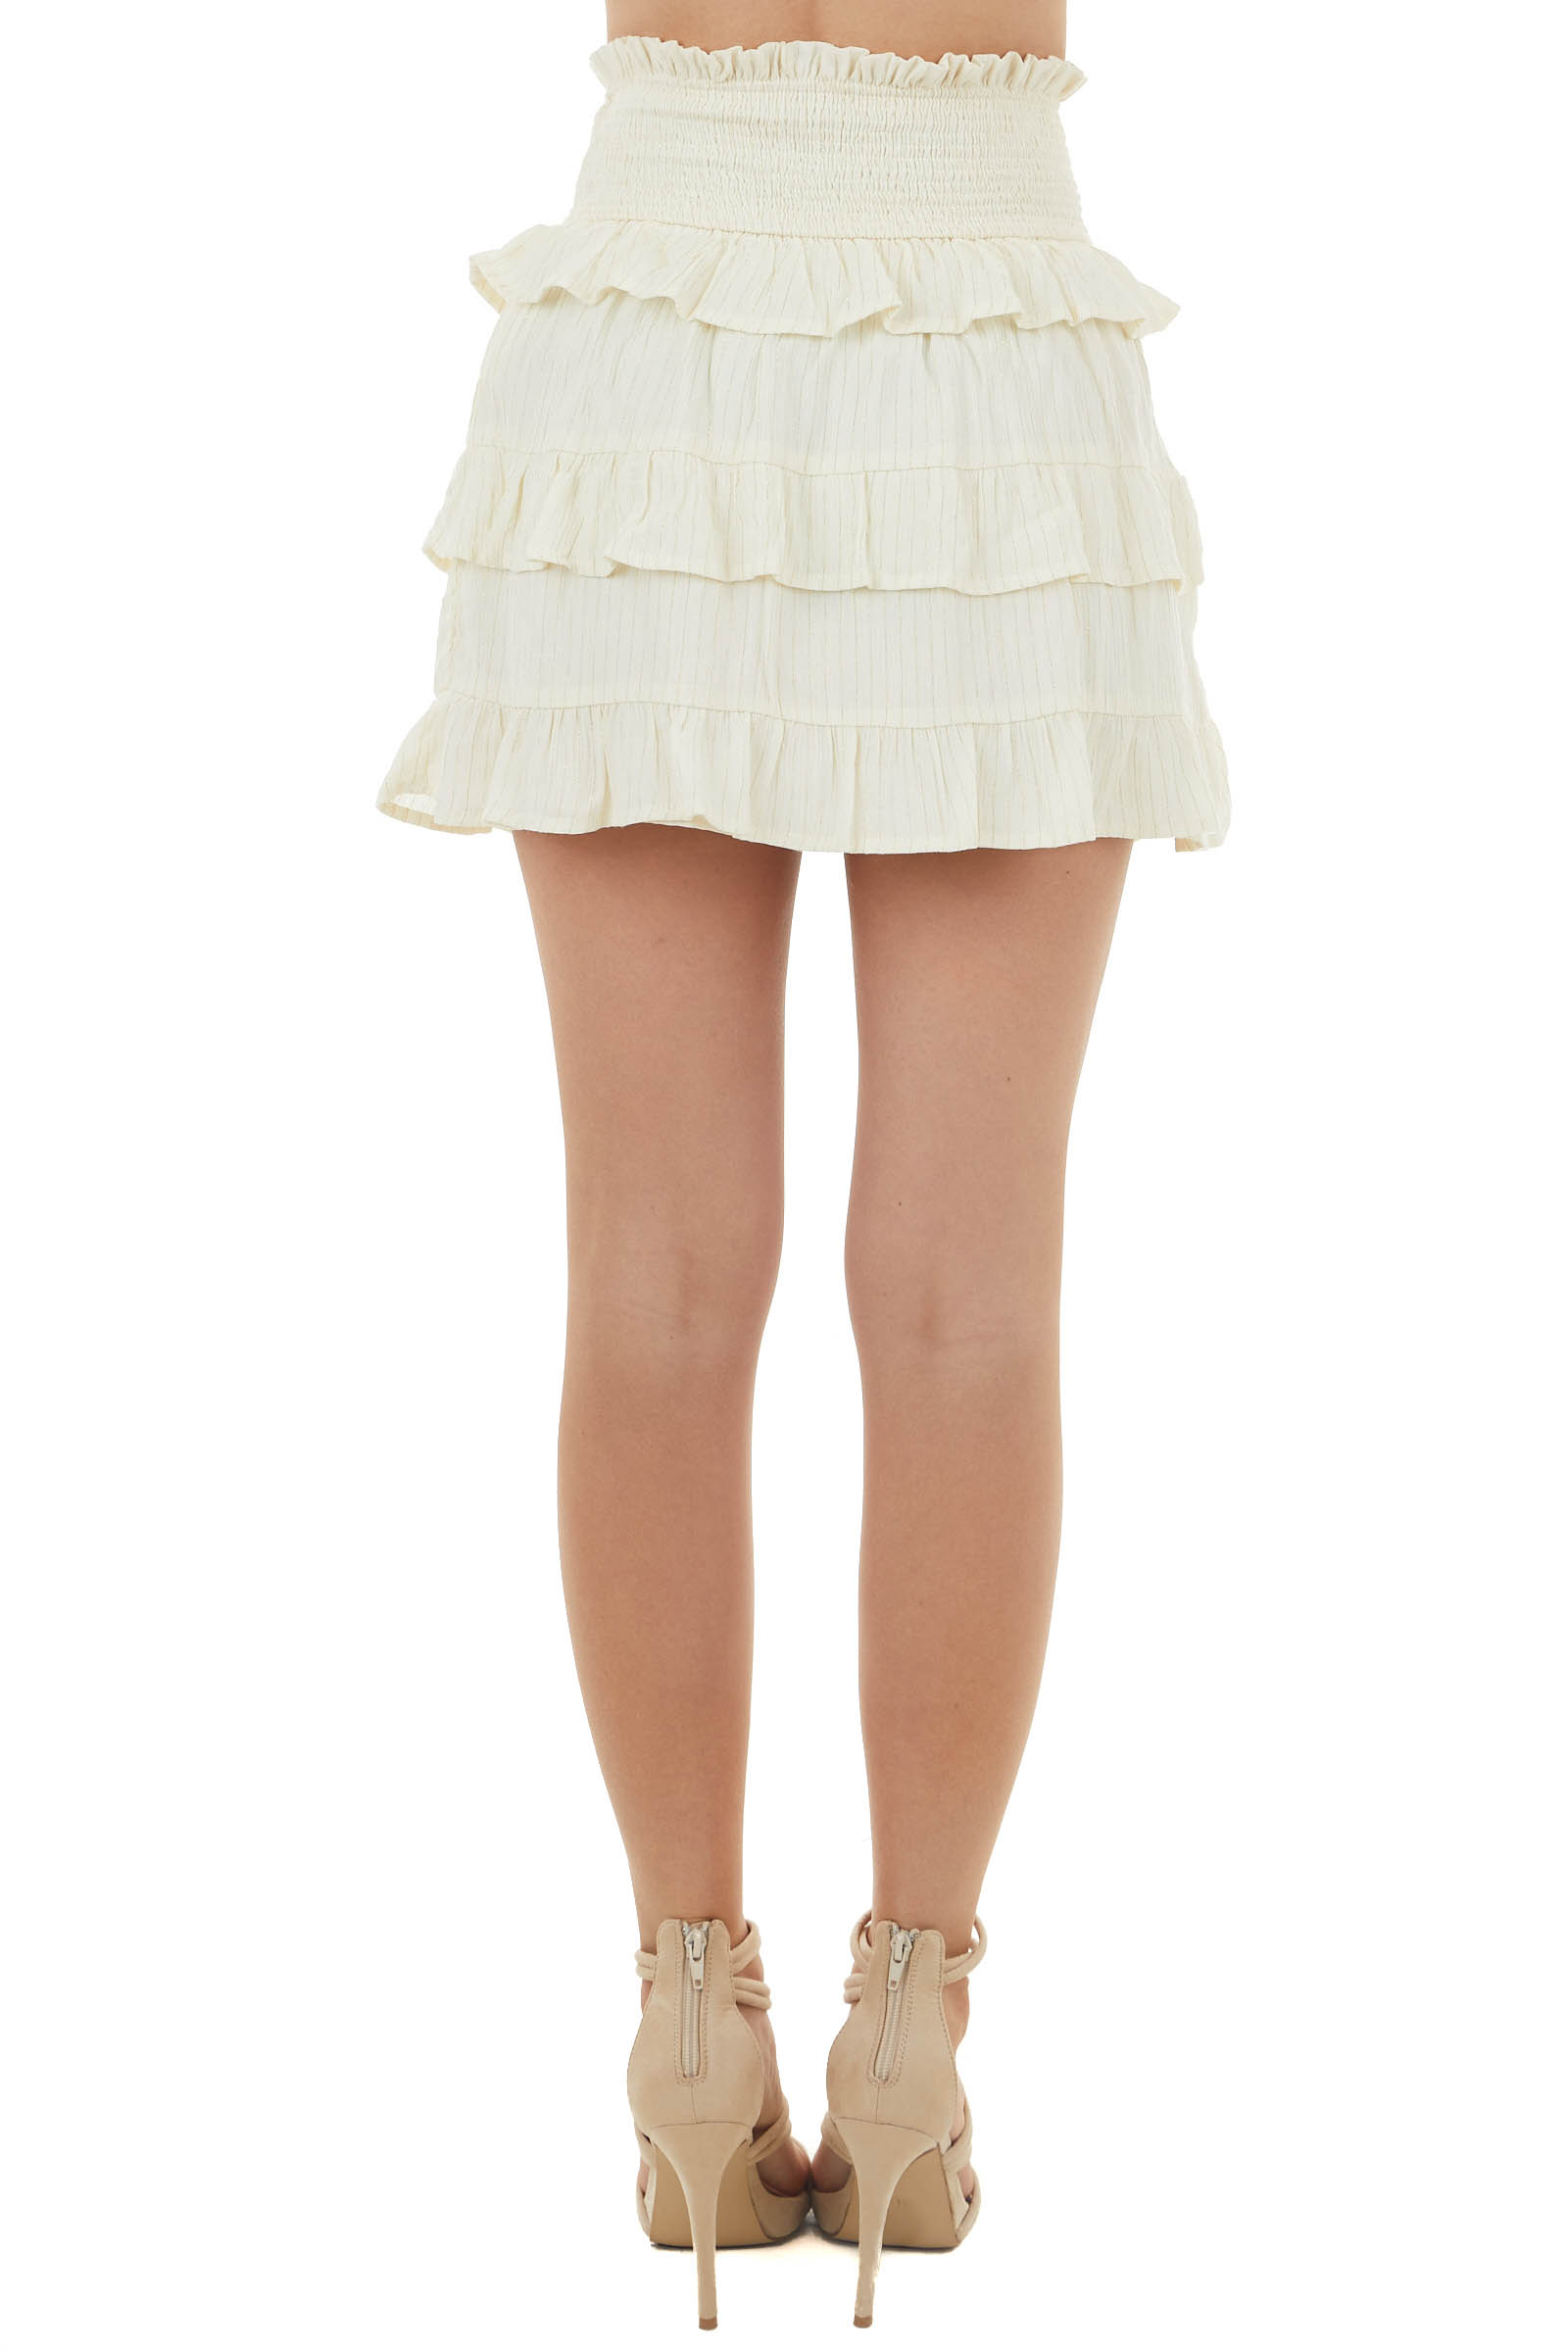 Cream Short Tiered Smocked Waist Skirt with Gold Thread